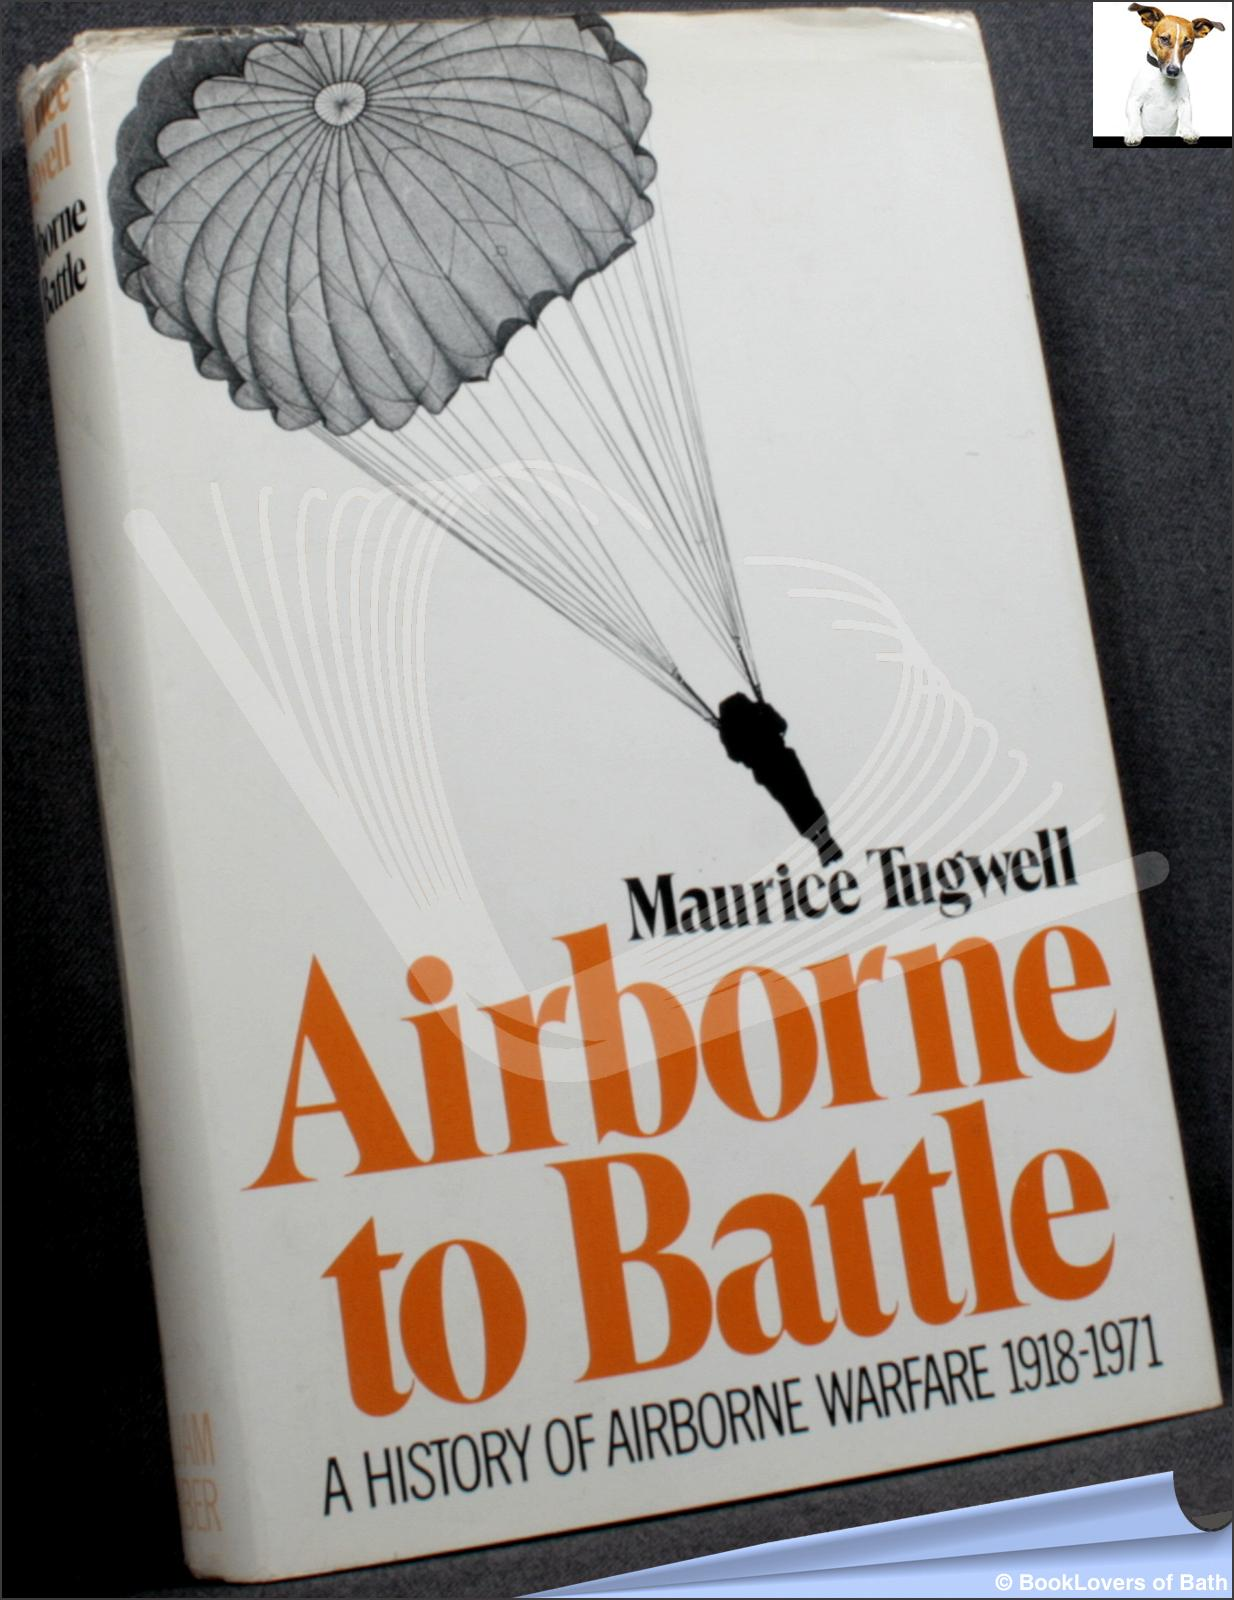 Airborne to Battle: A History of Airborne Warfare 1918-1971 - Maurice Tugwell